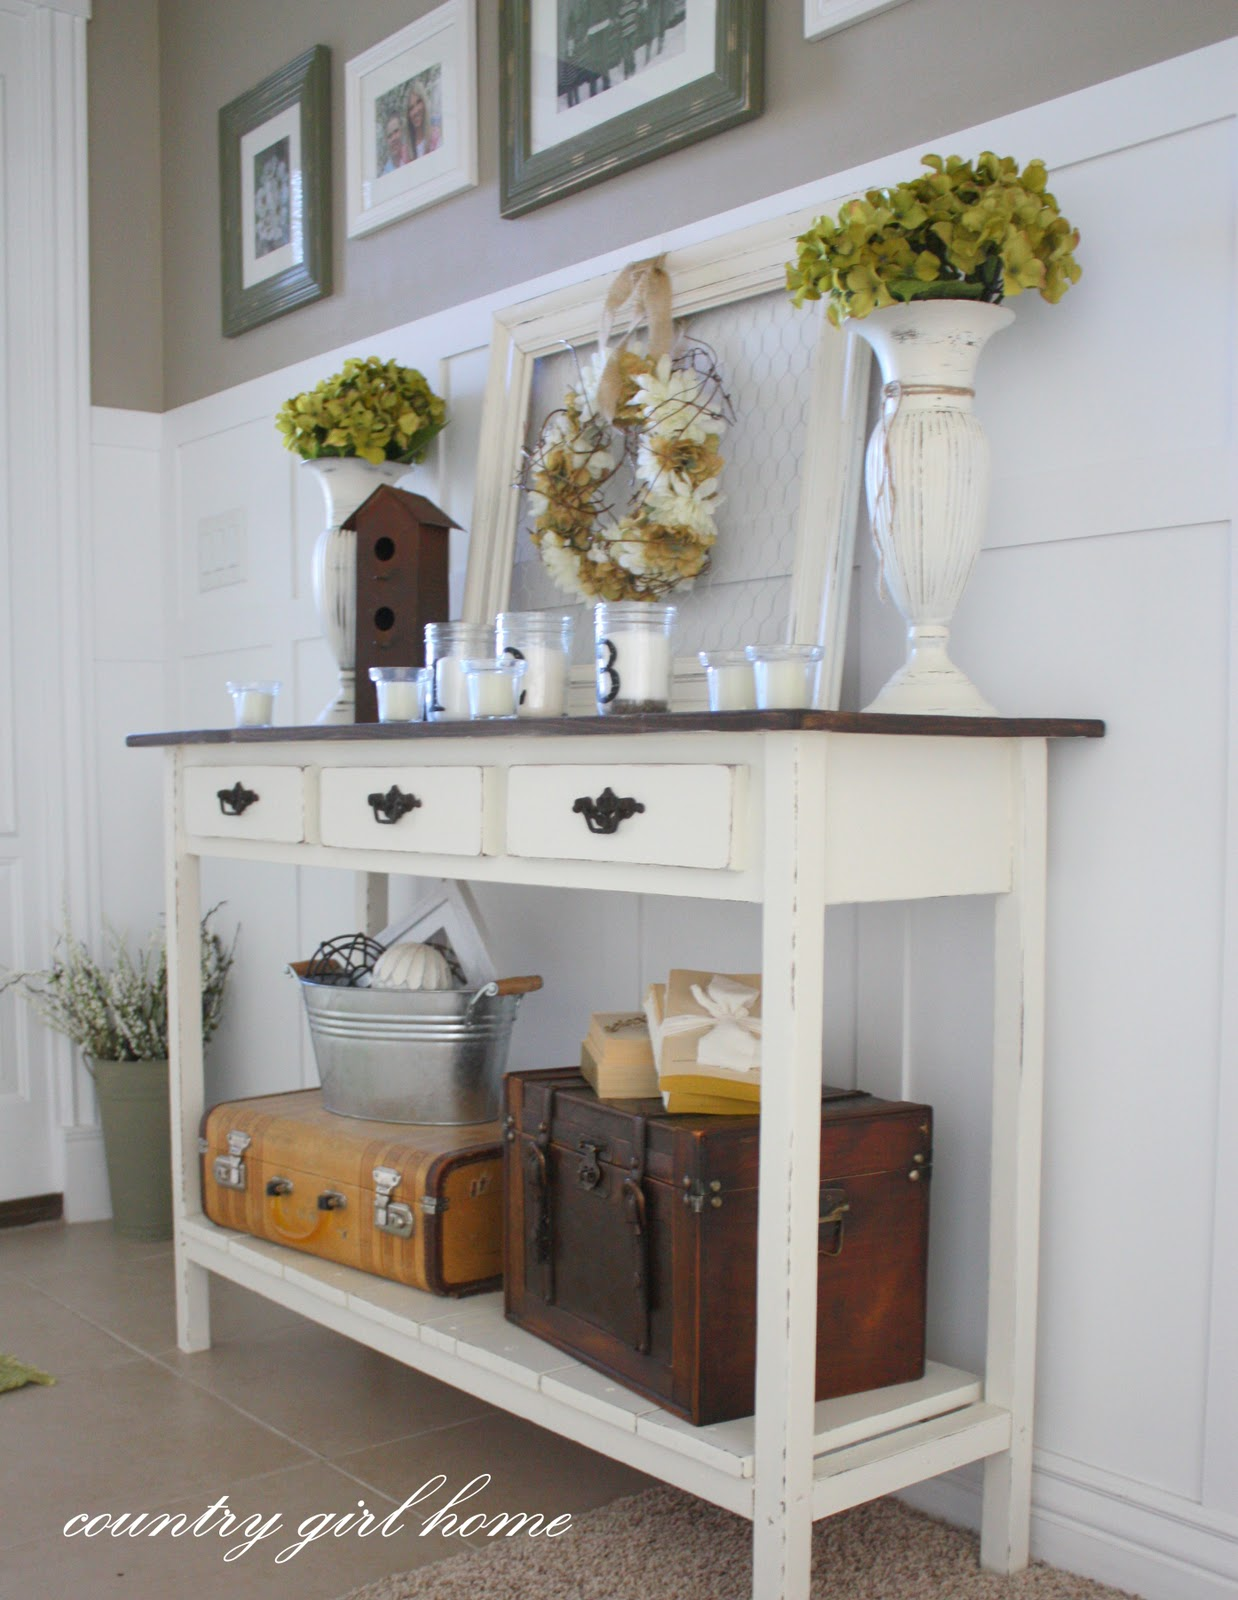 15 Entrance Hall Table Styles To Marvel At: COUNTRY GIRL HOME : A Few Things I Built